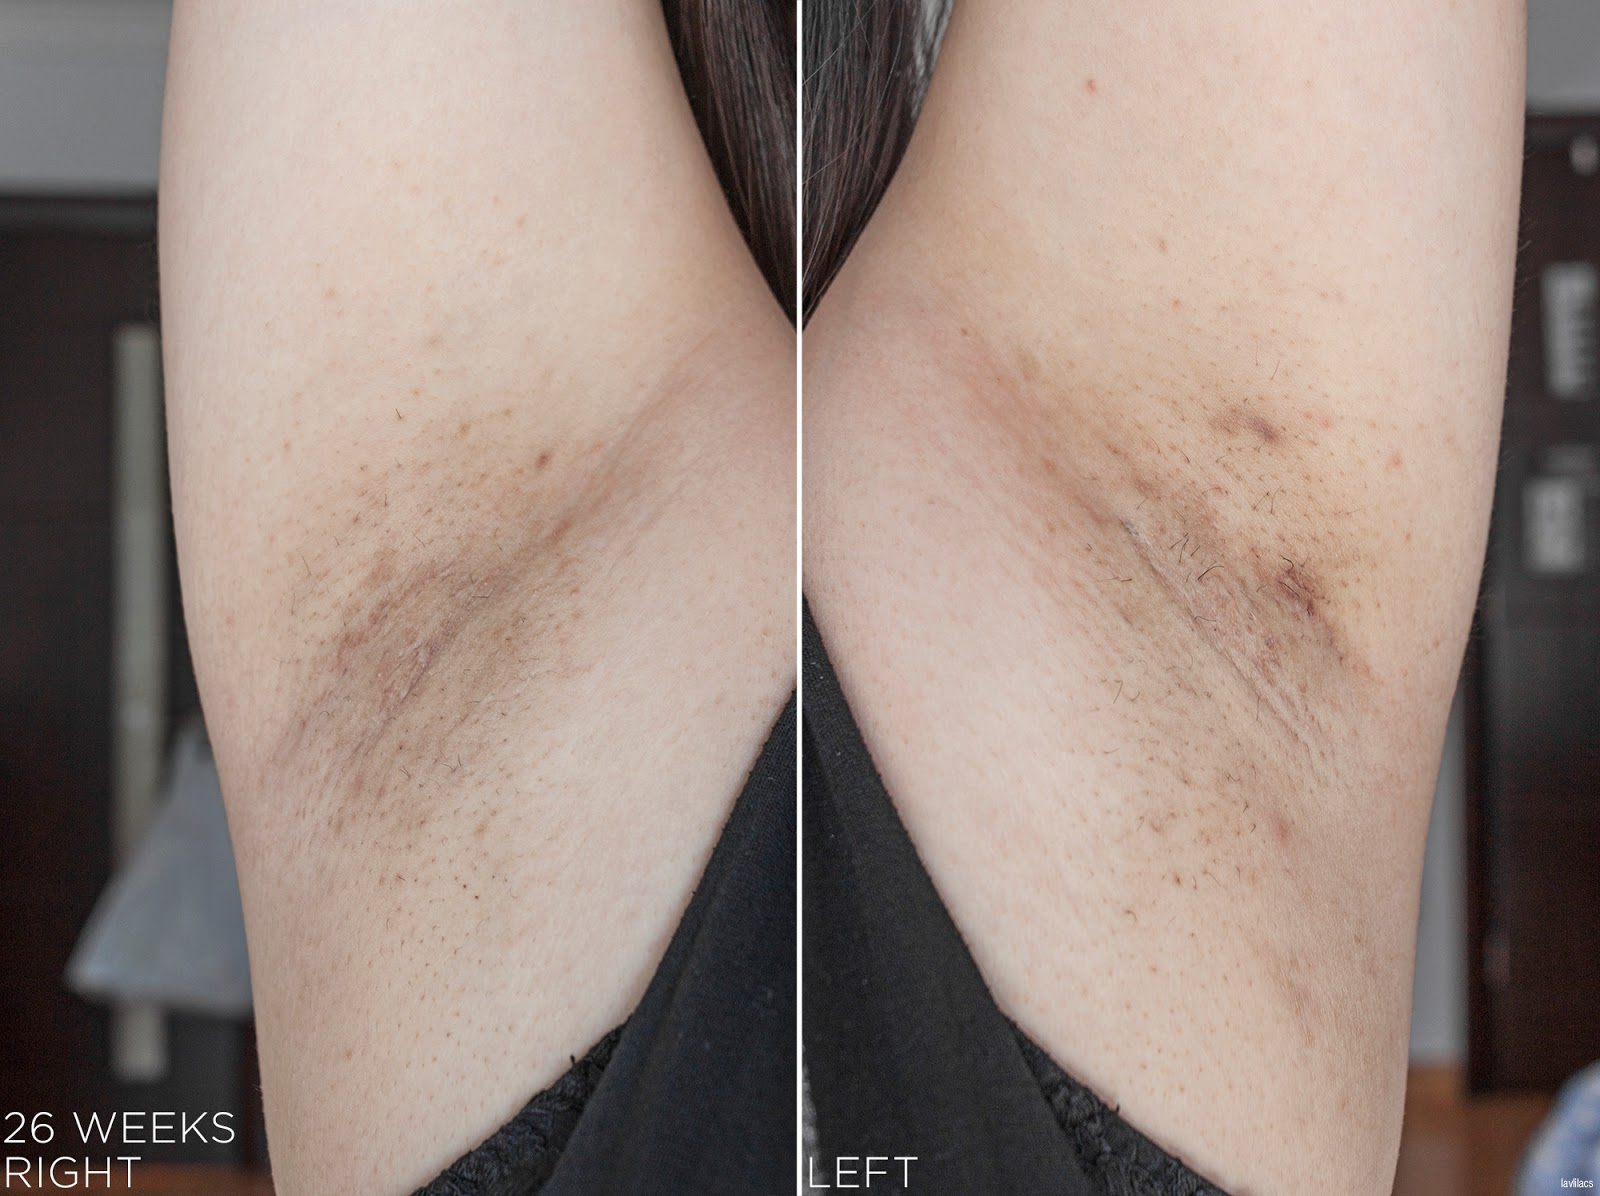 tria Hair Removal Laser Armpits Hair 26 Weeks, 6 months